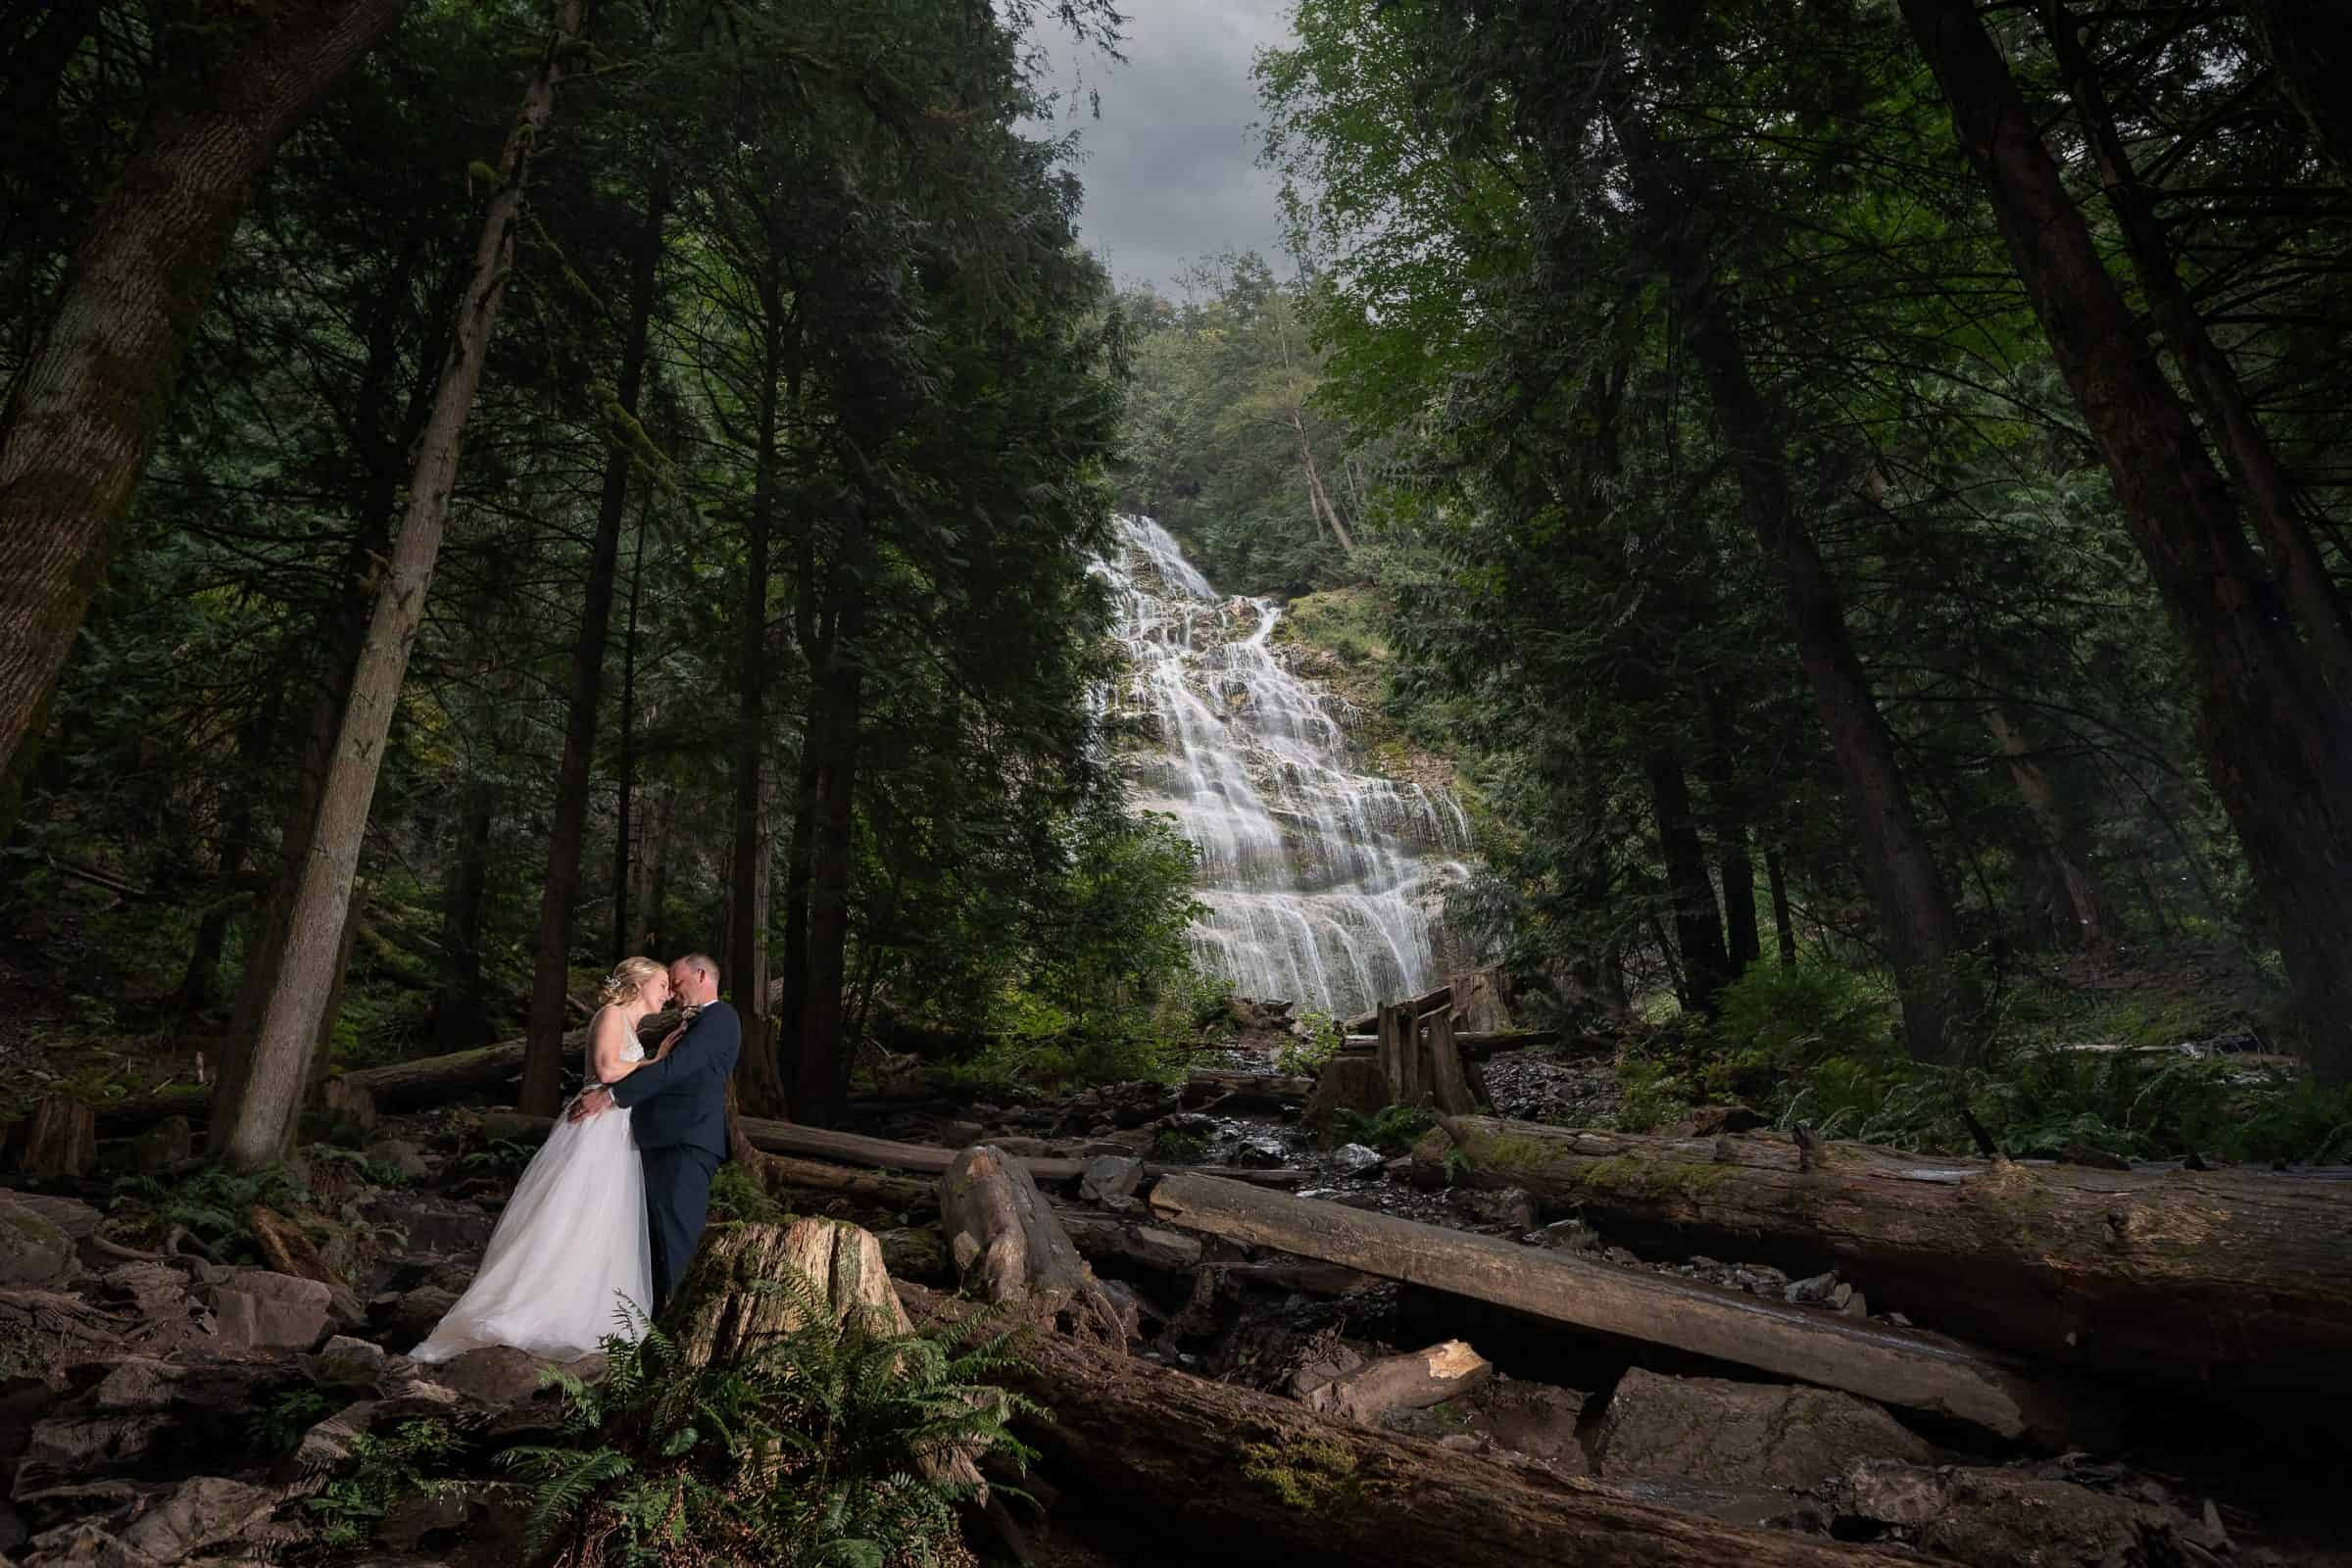 bride and groom holding each other with bridal falls in background